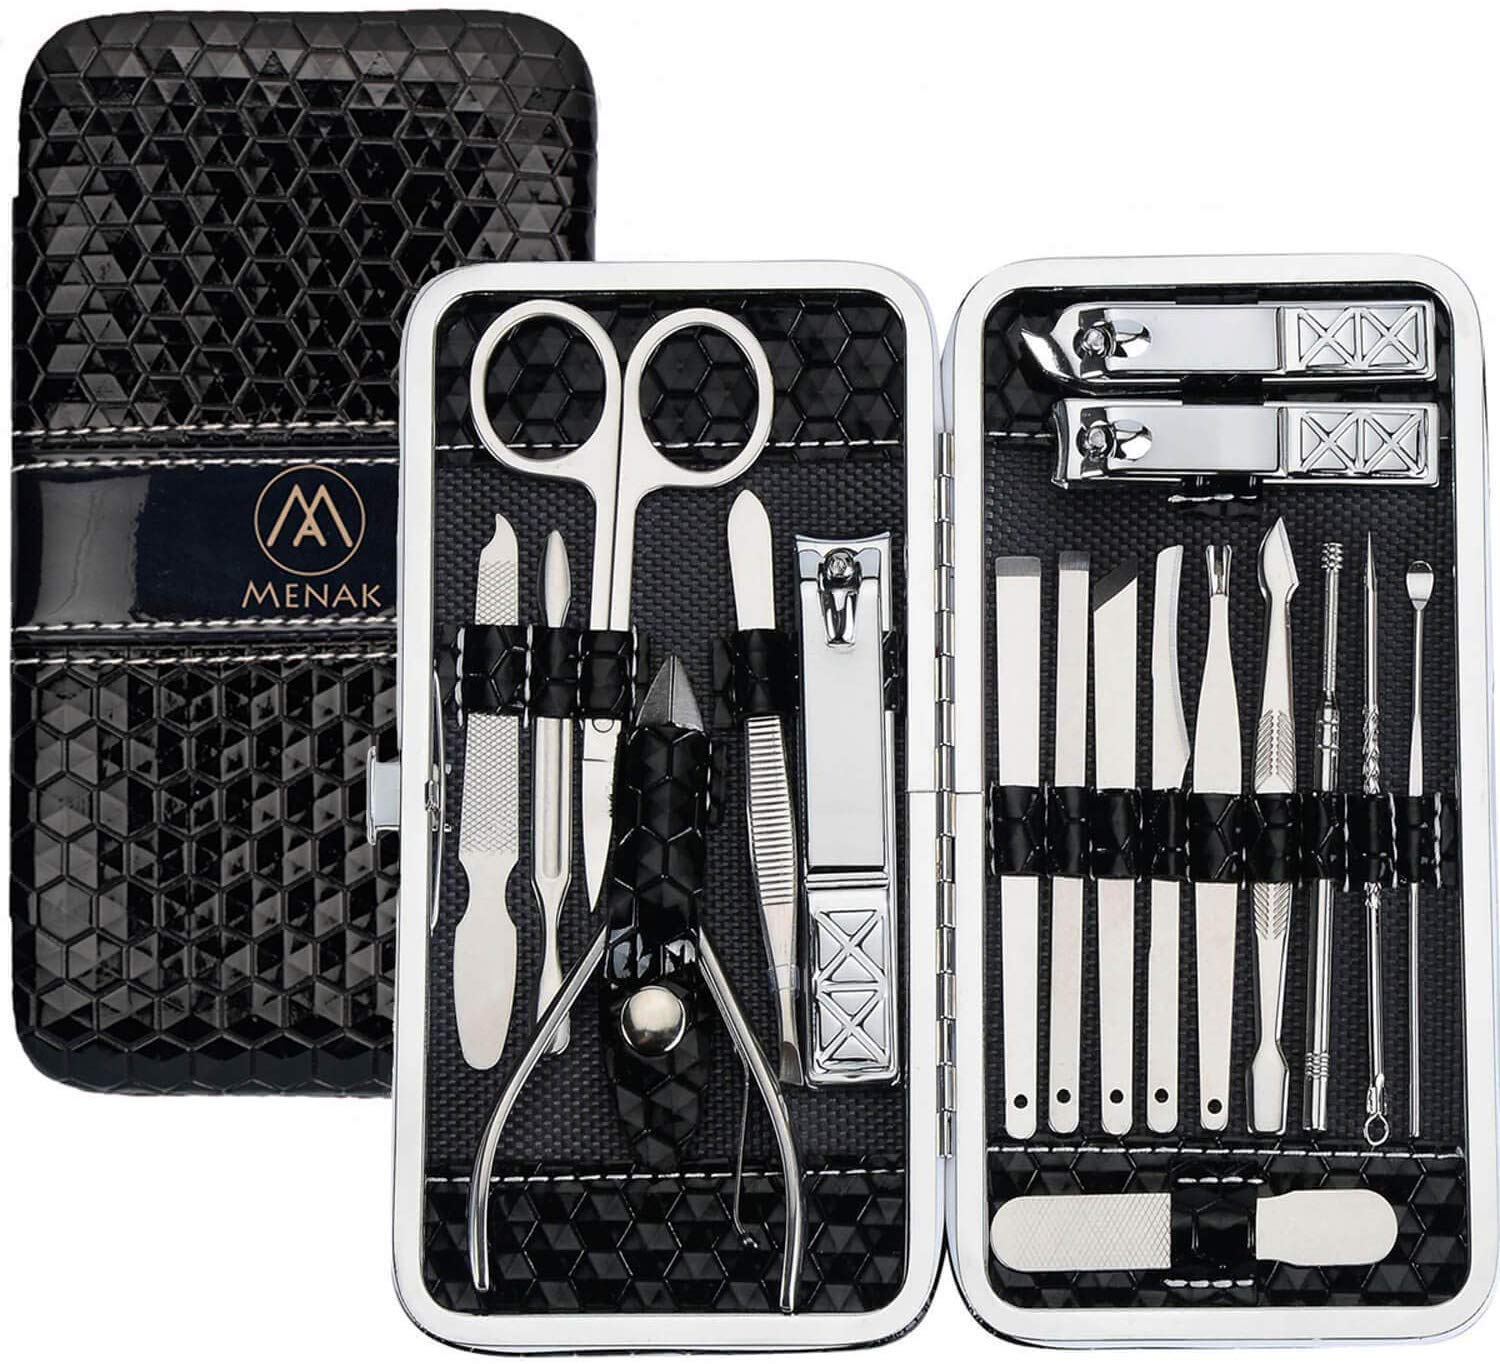 Nail Clippers Set Manicure Pedicure Kit - Stainless Steel 18 in 1 Portable Travel Grooming Kit-Facial and Nail Care Tools for Men and Women (Black)